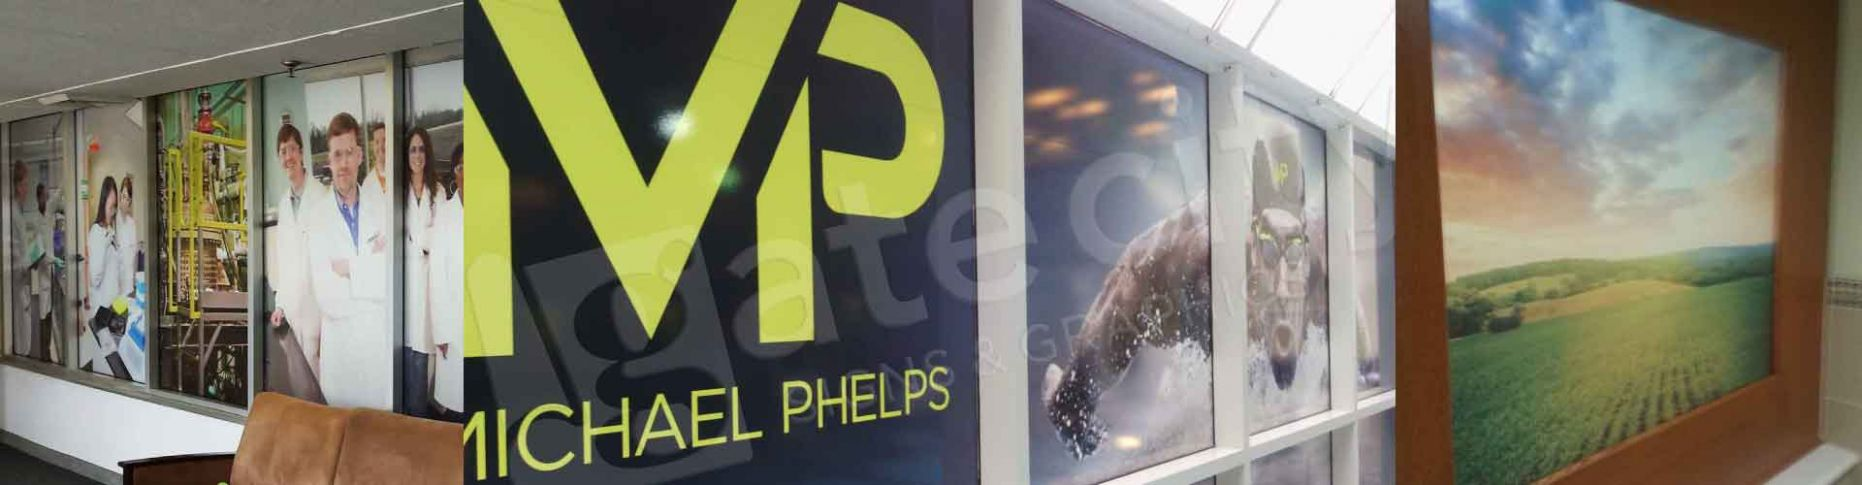 Customize Your Storefront with the Best Graphic Window Design for ..